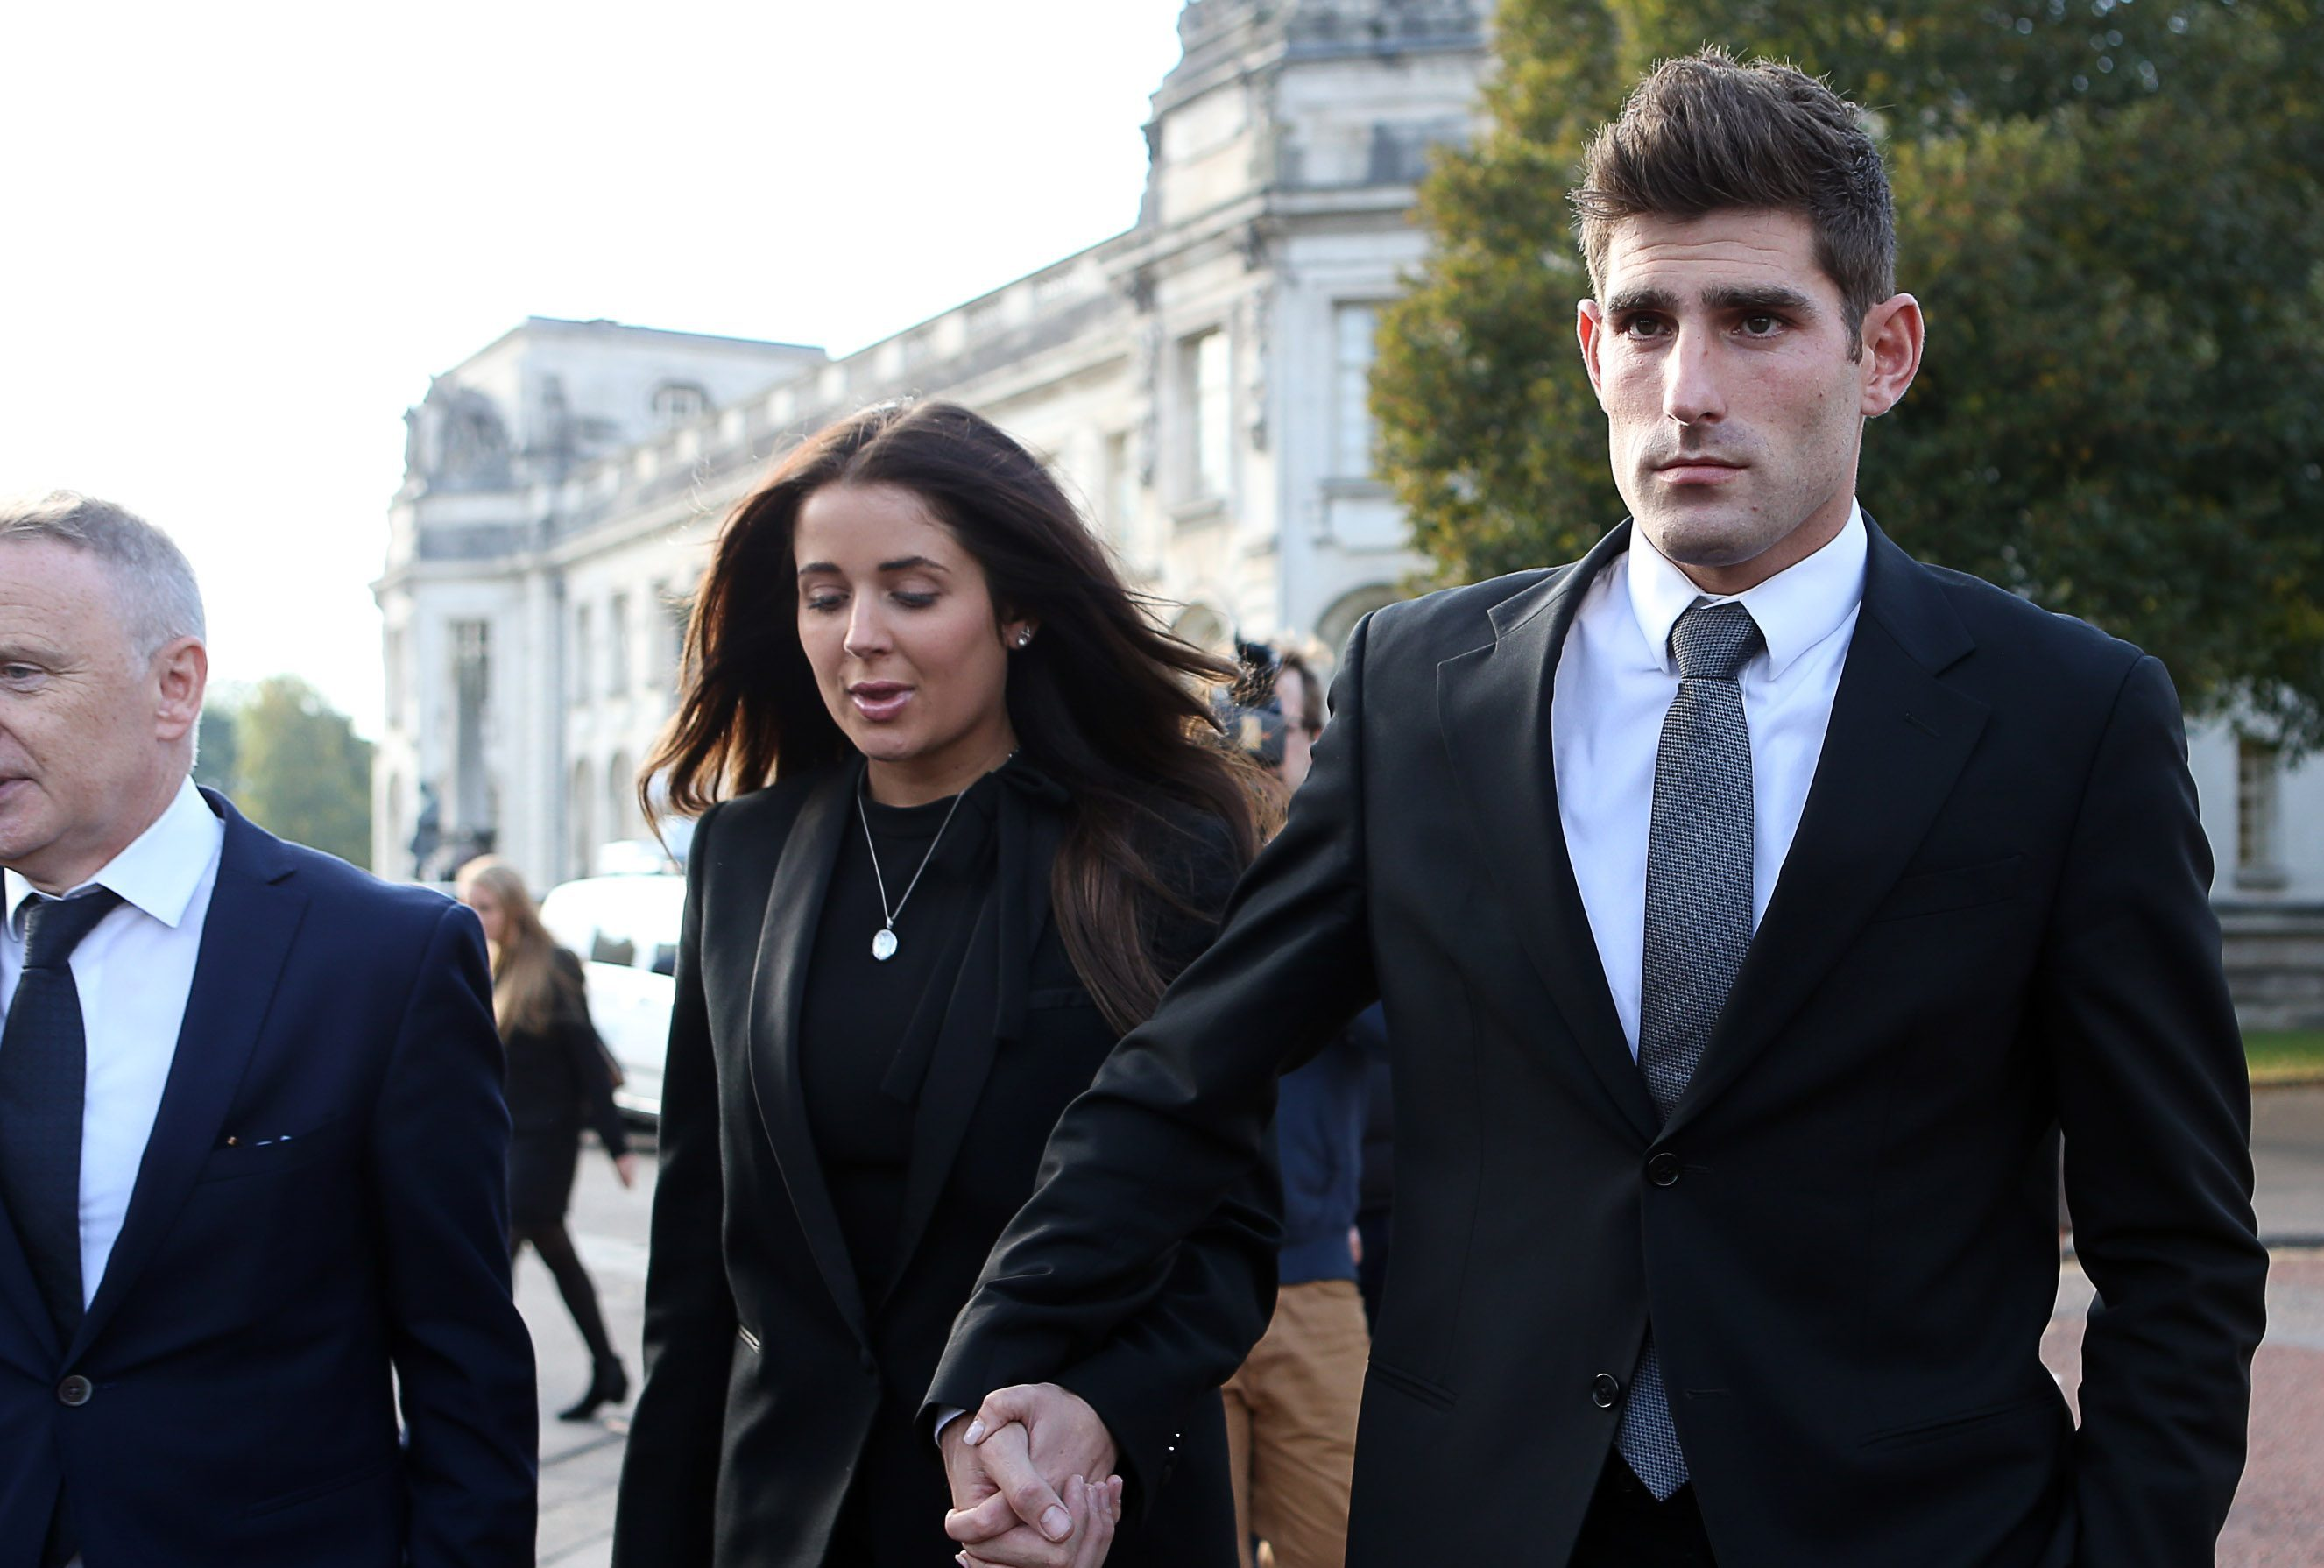 Ched Evans should not be allowed back into a position of influence, despite innocence